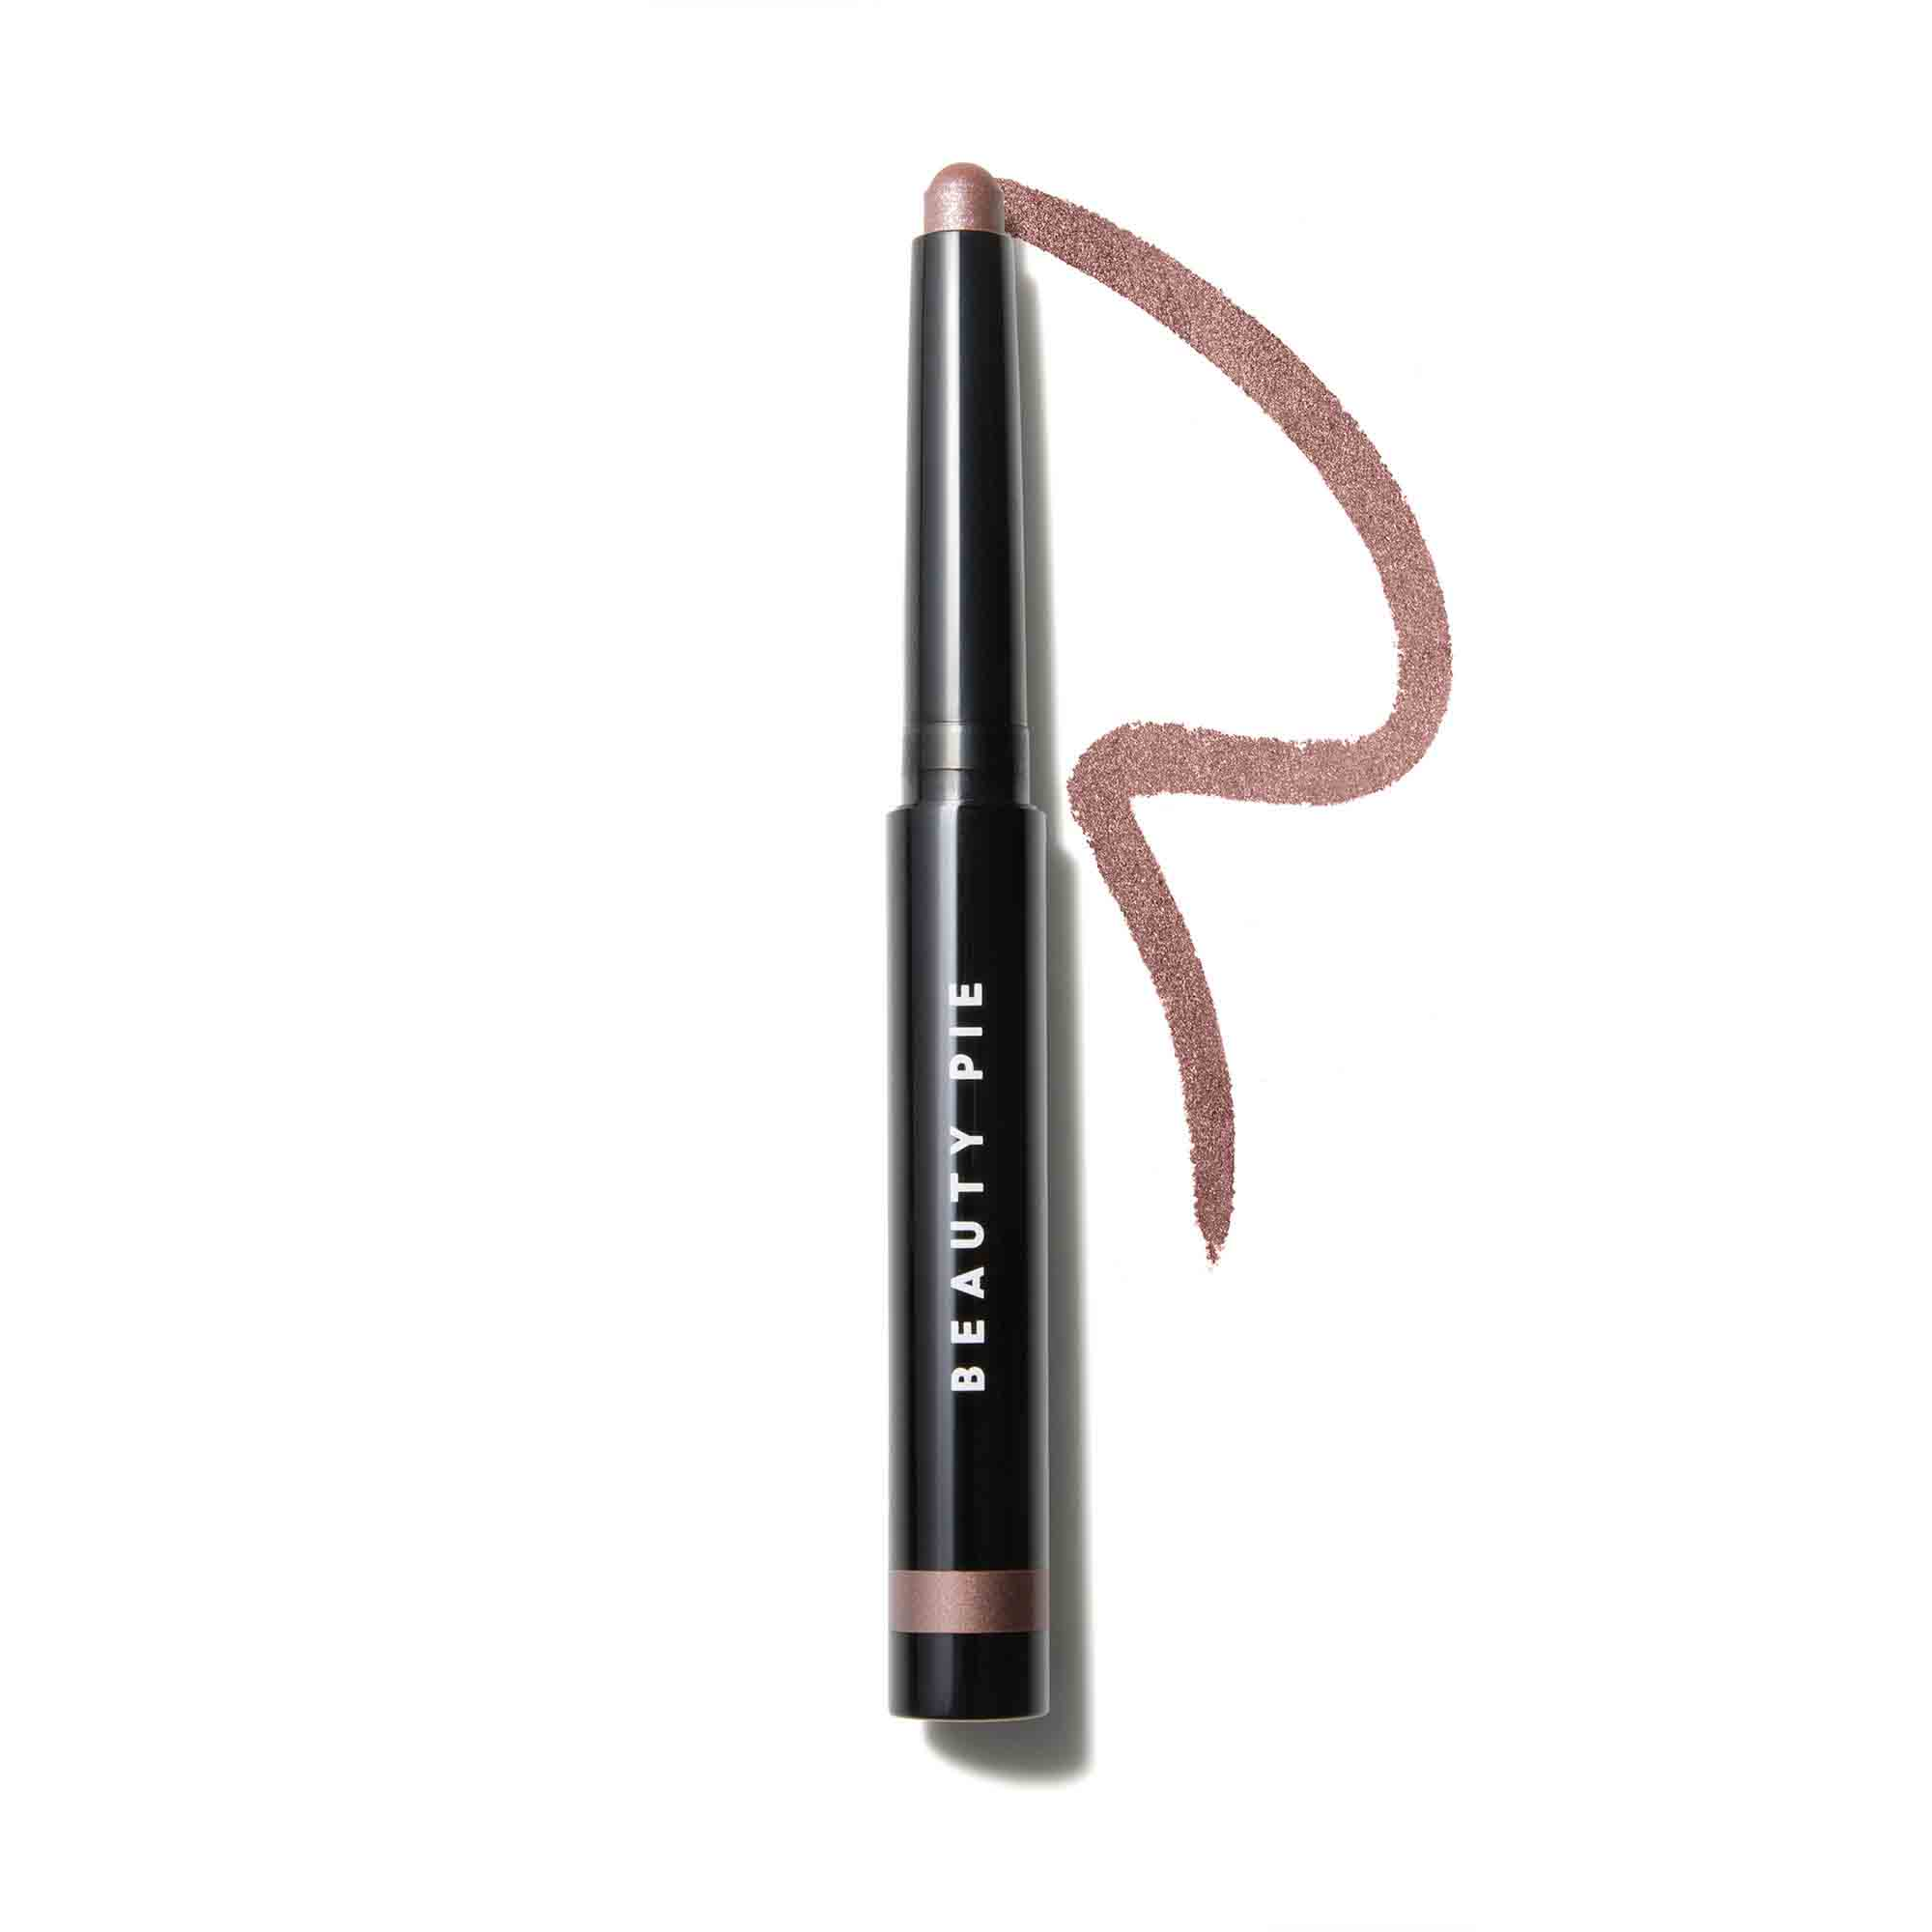 Image for Wondercolour™ Longwear Cream Shadow Stick from BeautyPie US